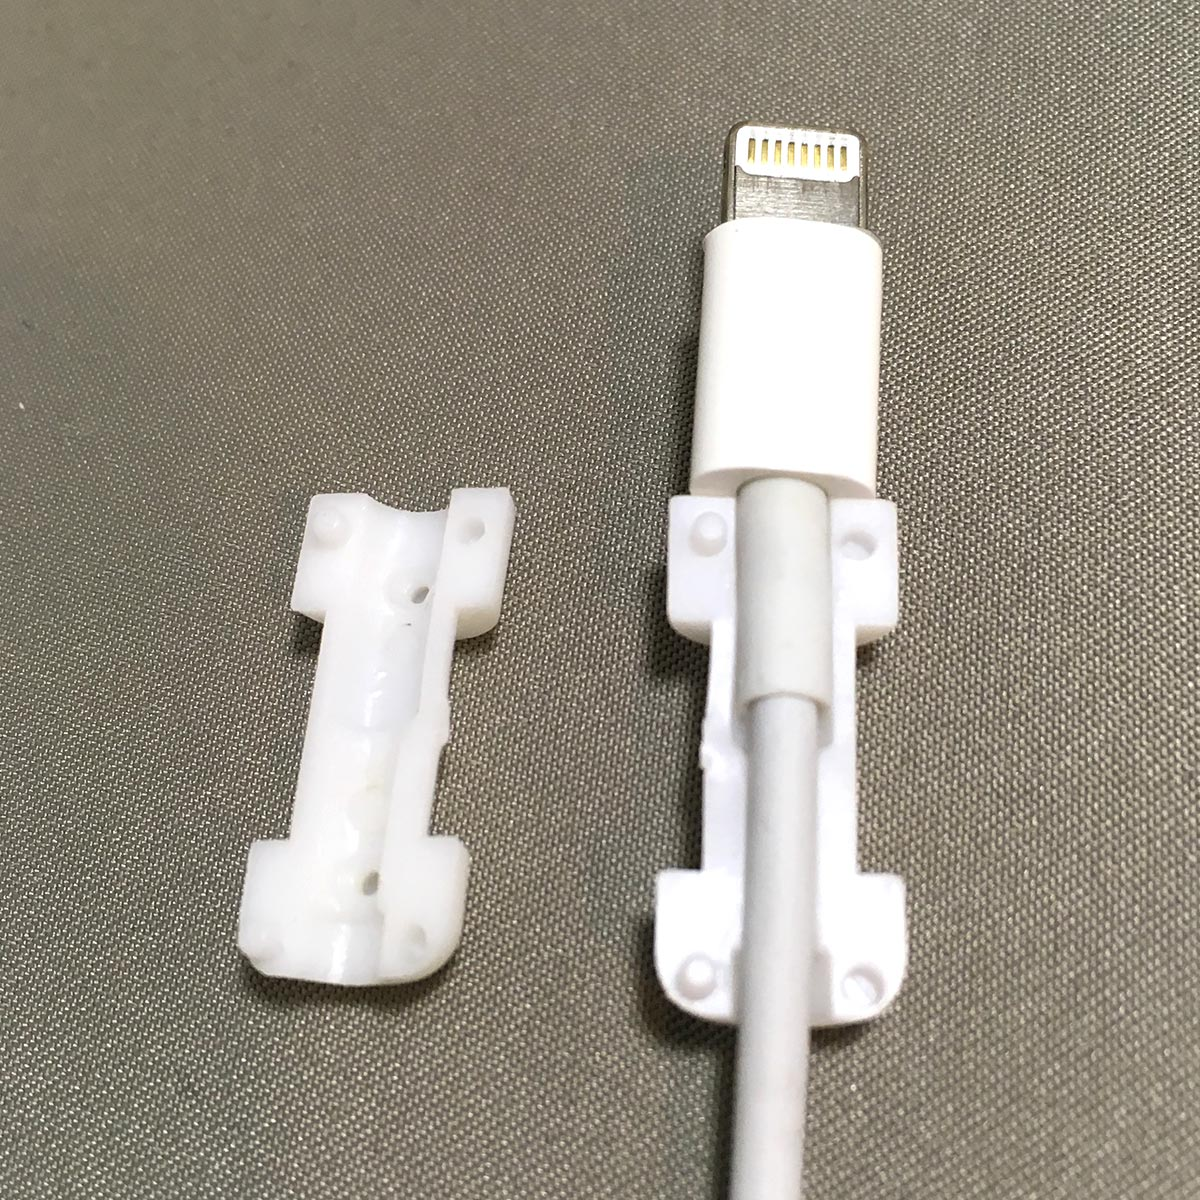 Lightning Cable Protector - Attached to cable step 1